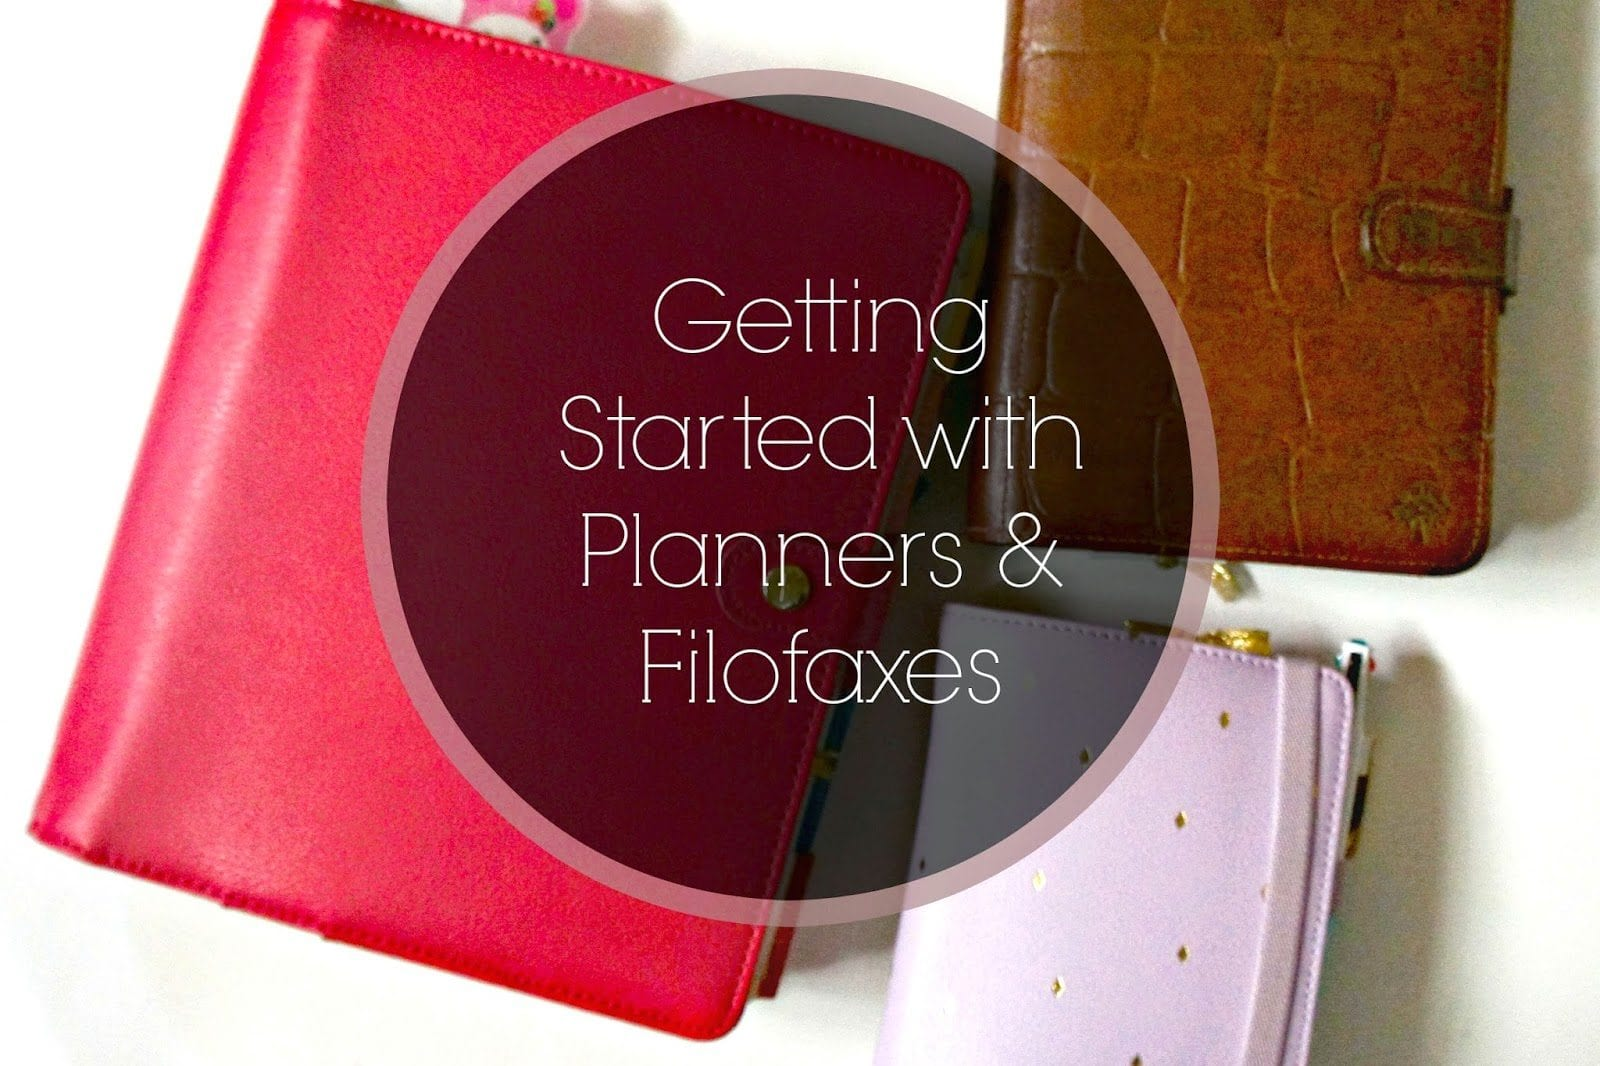 Getting Started with Planners & Filofaxes